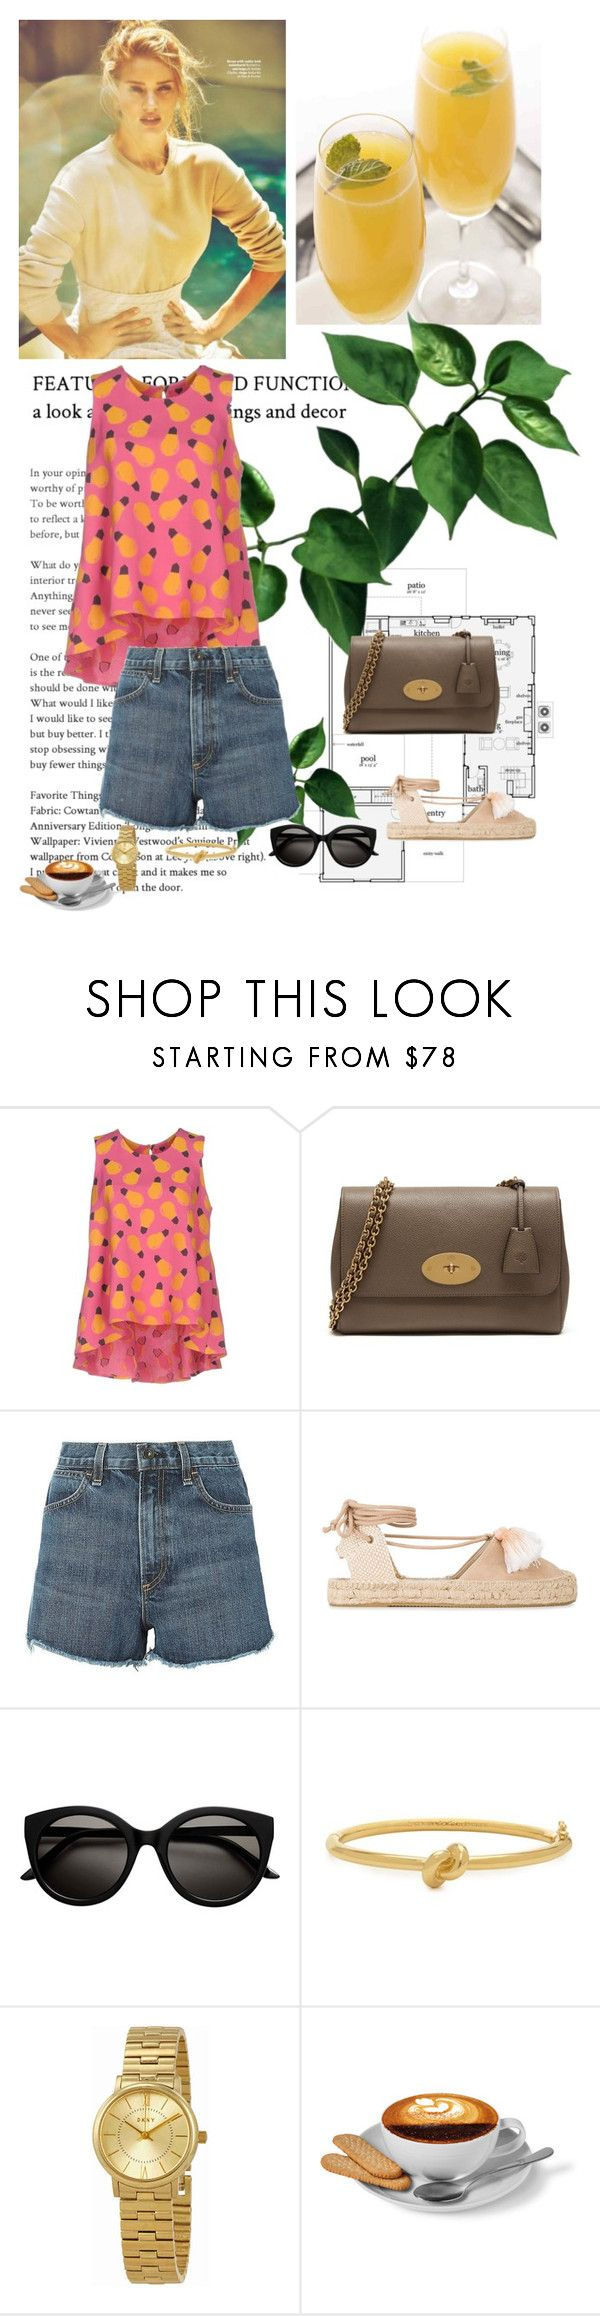 """""""Free"""" by ladyhysteria ❤ liked on Polyvore featuring Whiteley, Ultra'Chic, Mulberry, rag & bone, Soludos, Kate Spade and DKNY"""